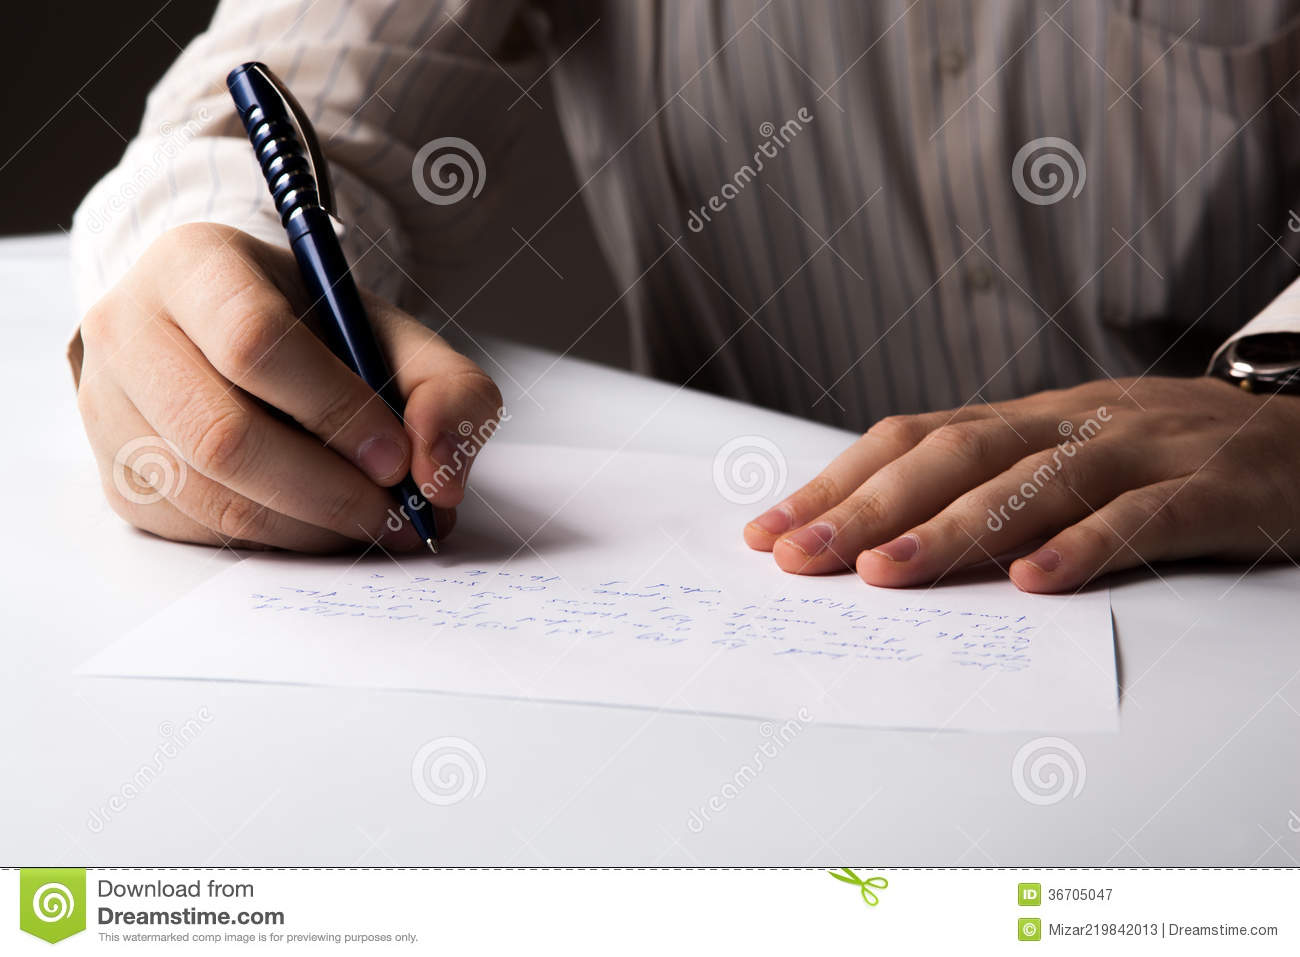 Man is writting on a sheet of paper